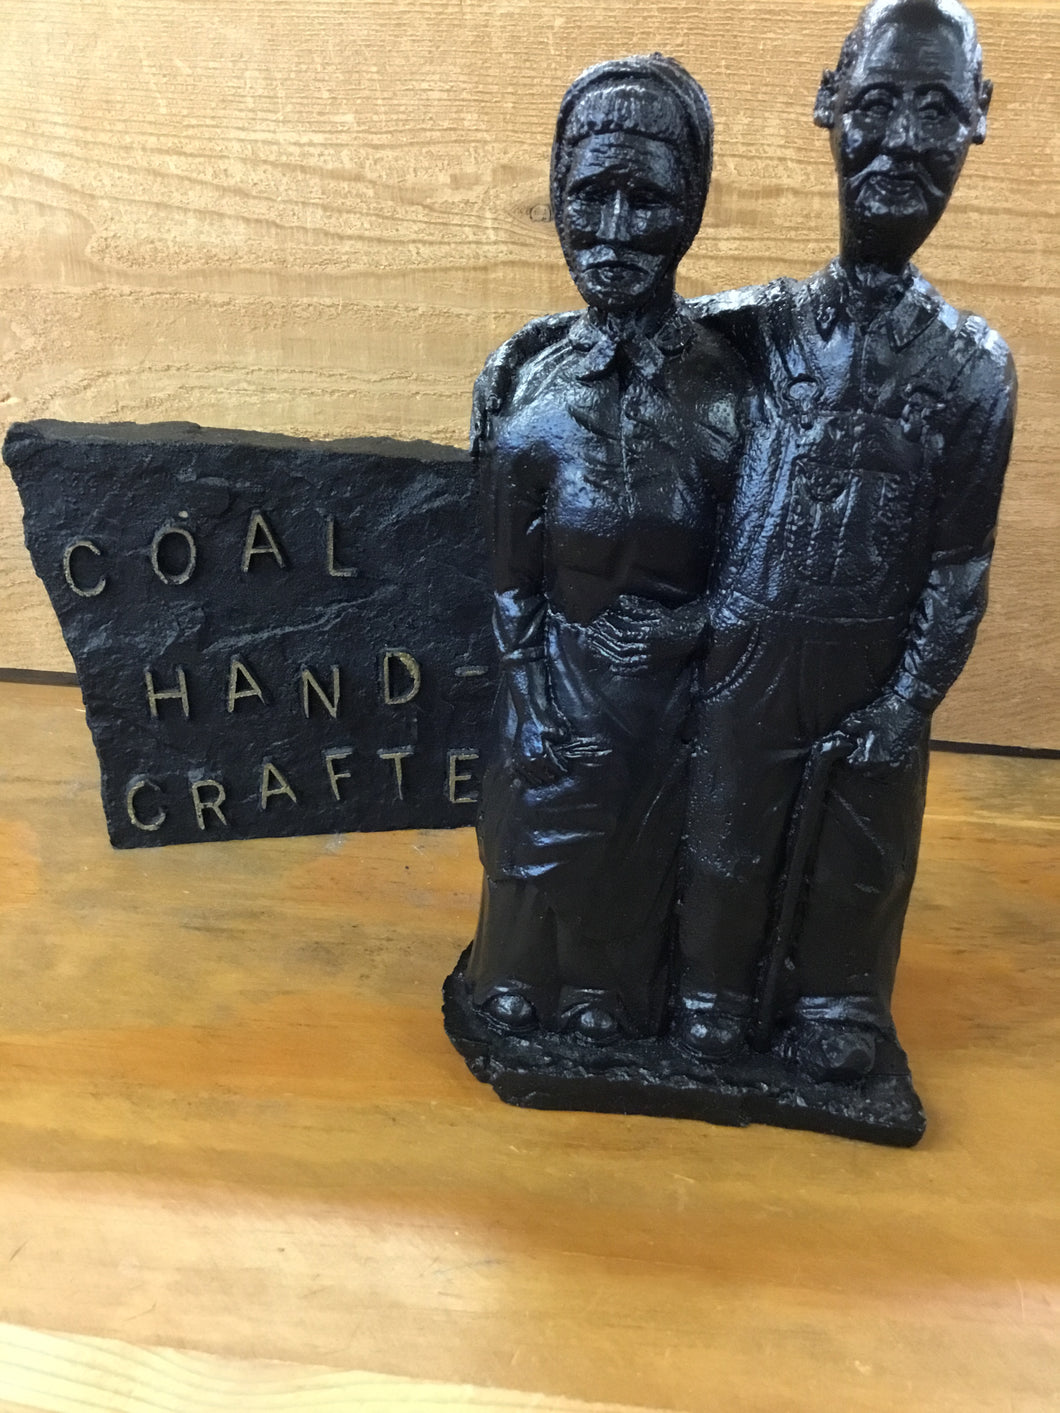 Ma & Pa Hand Crafted from Coal